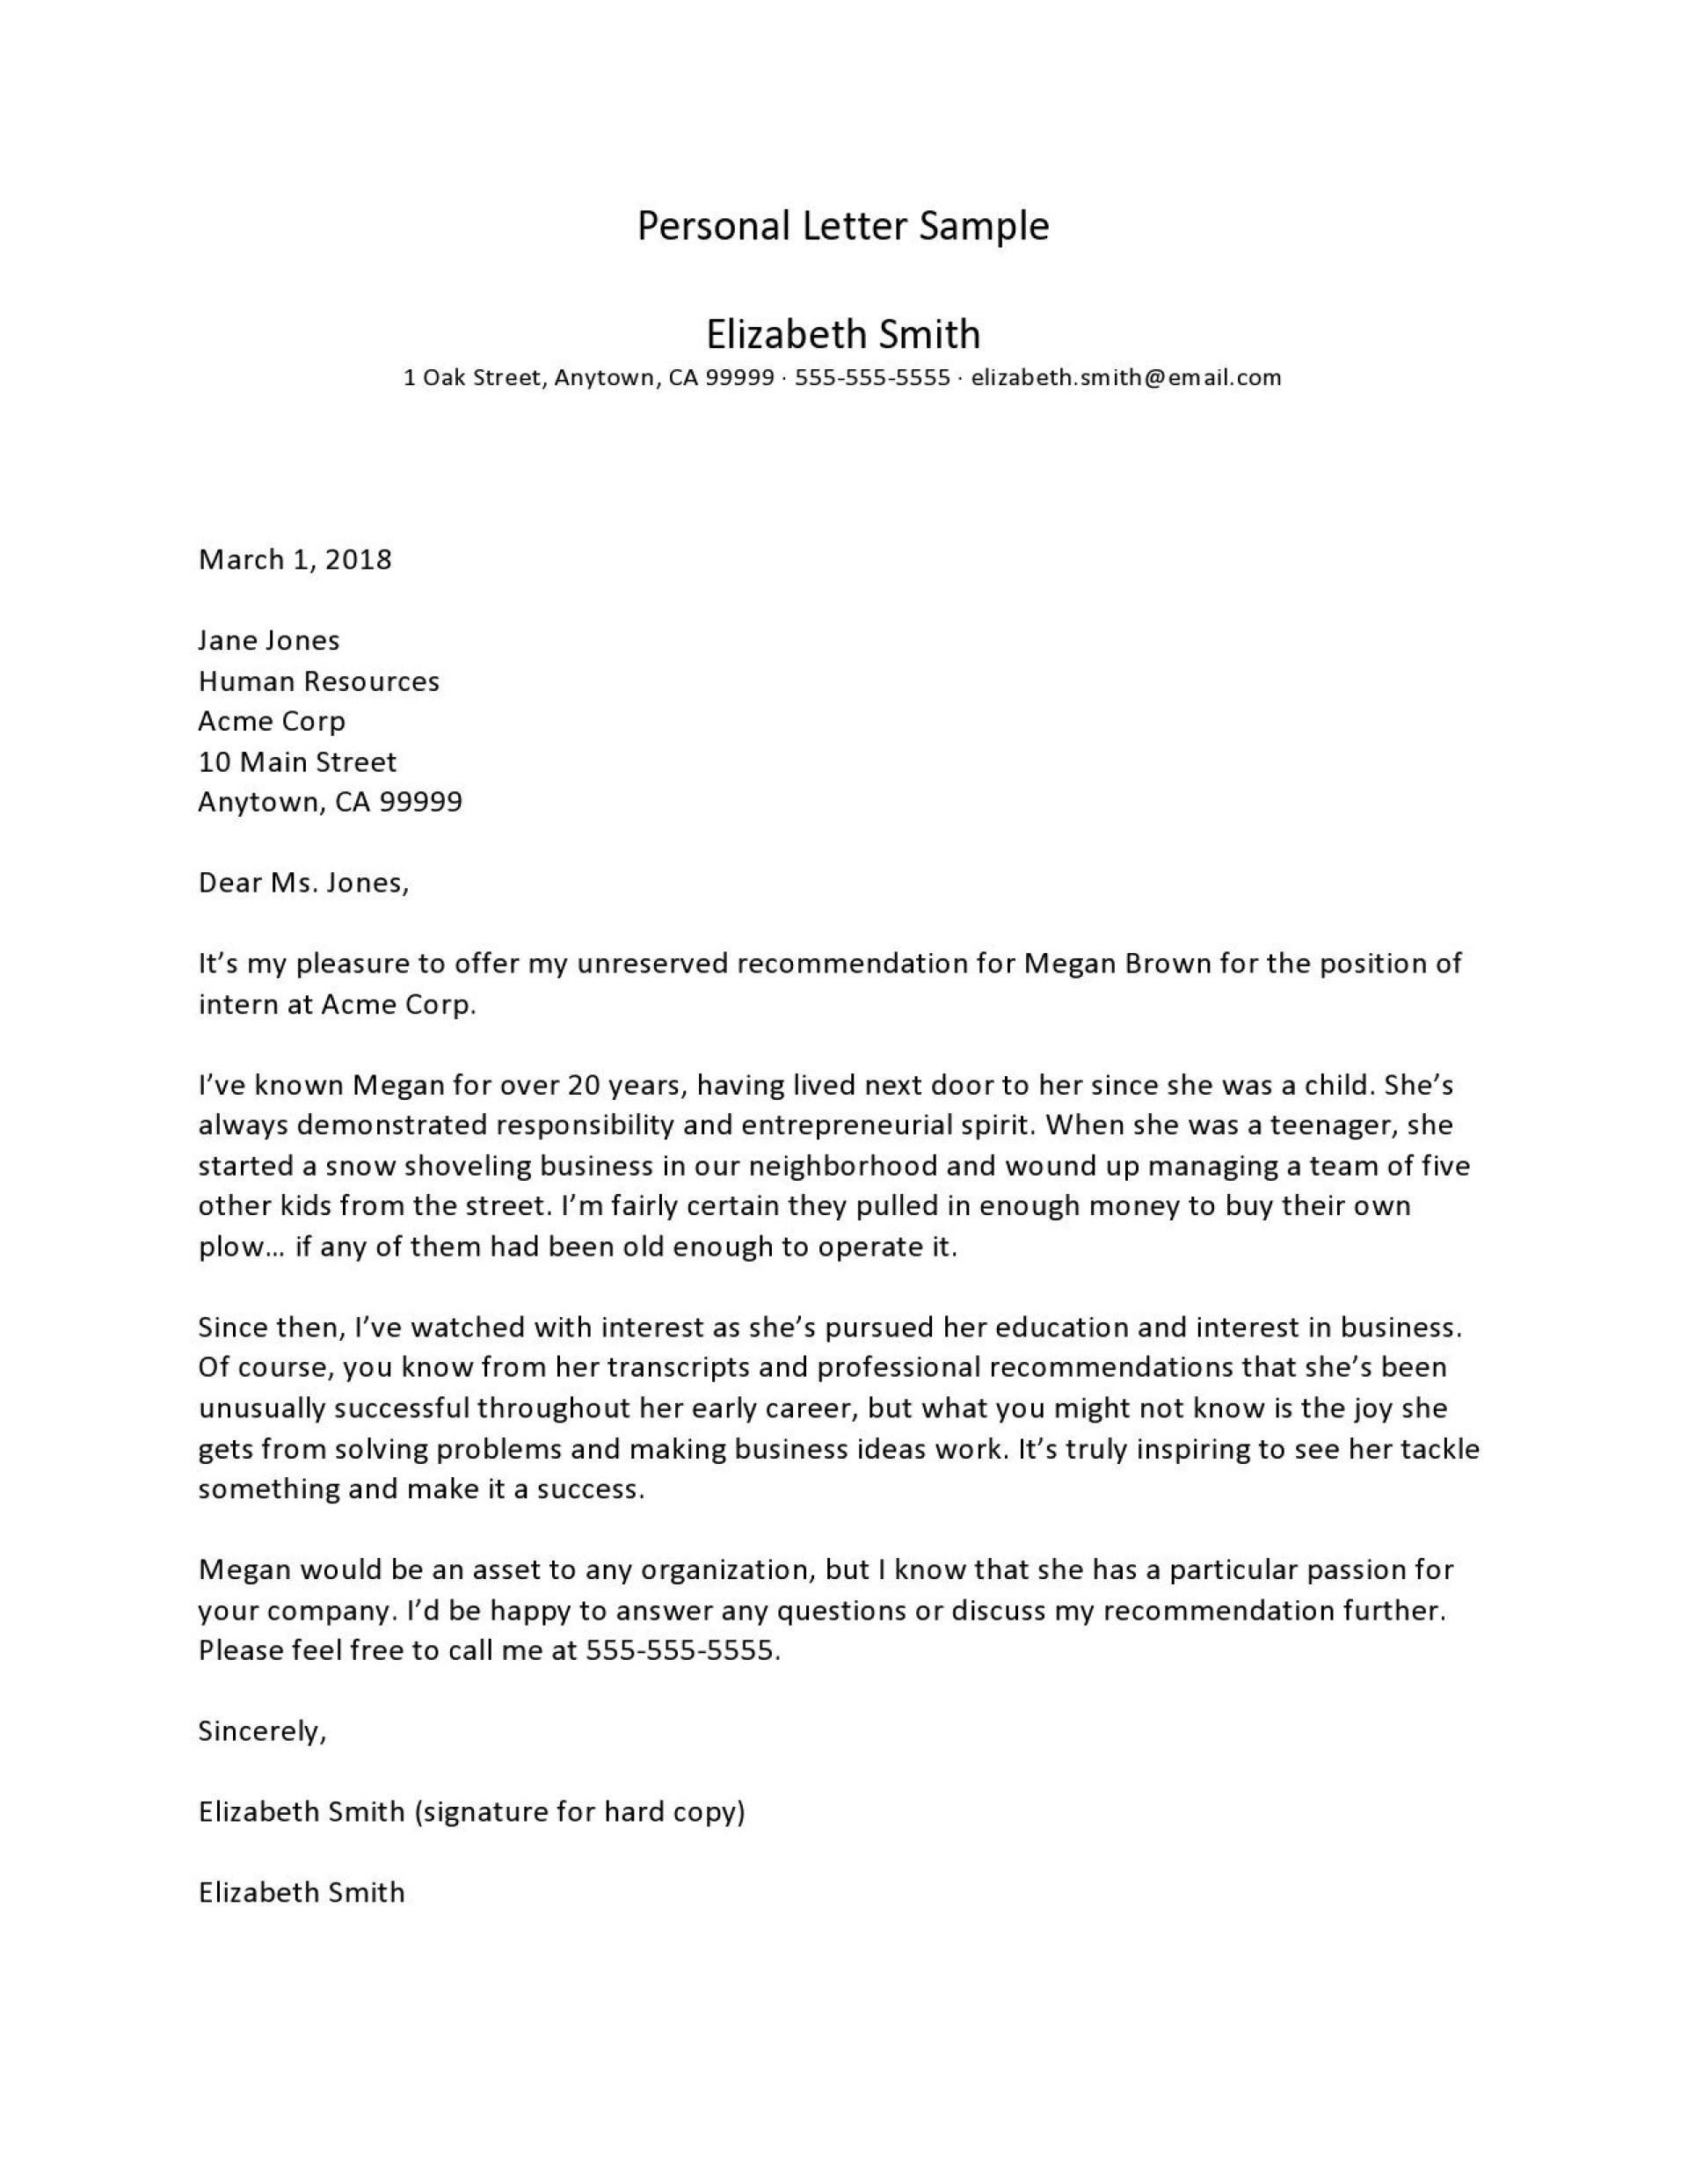 006 Impressive Free Letter Writing Template Download Sample 1920